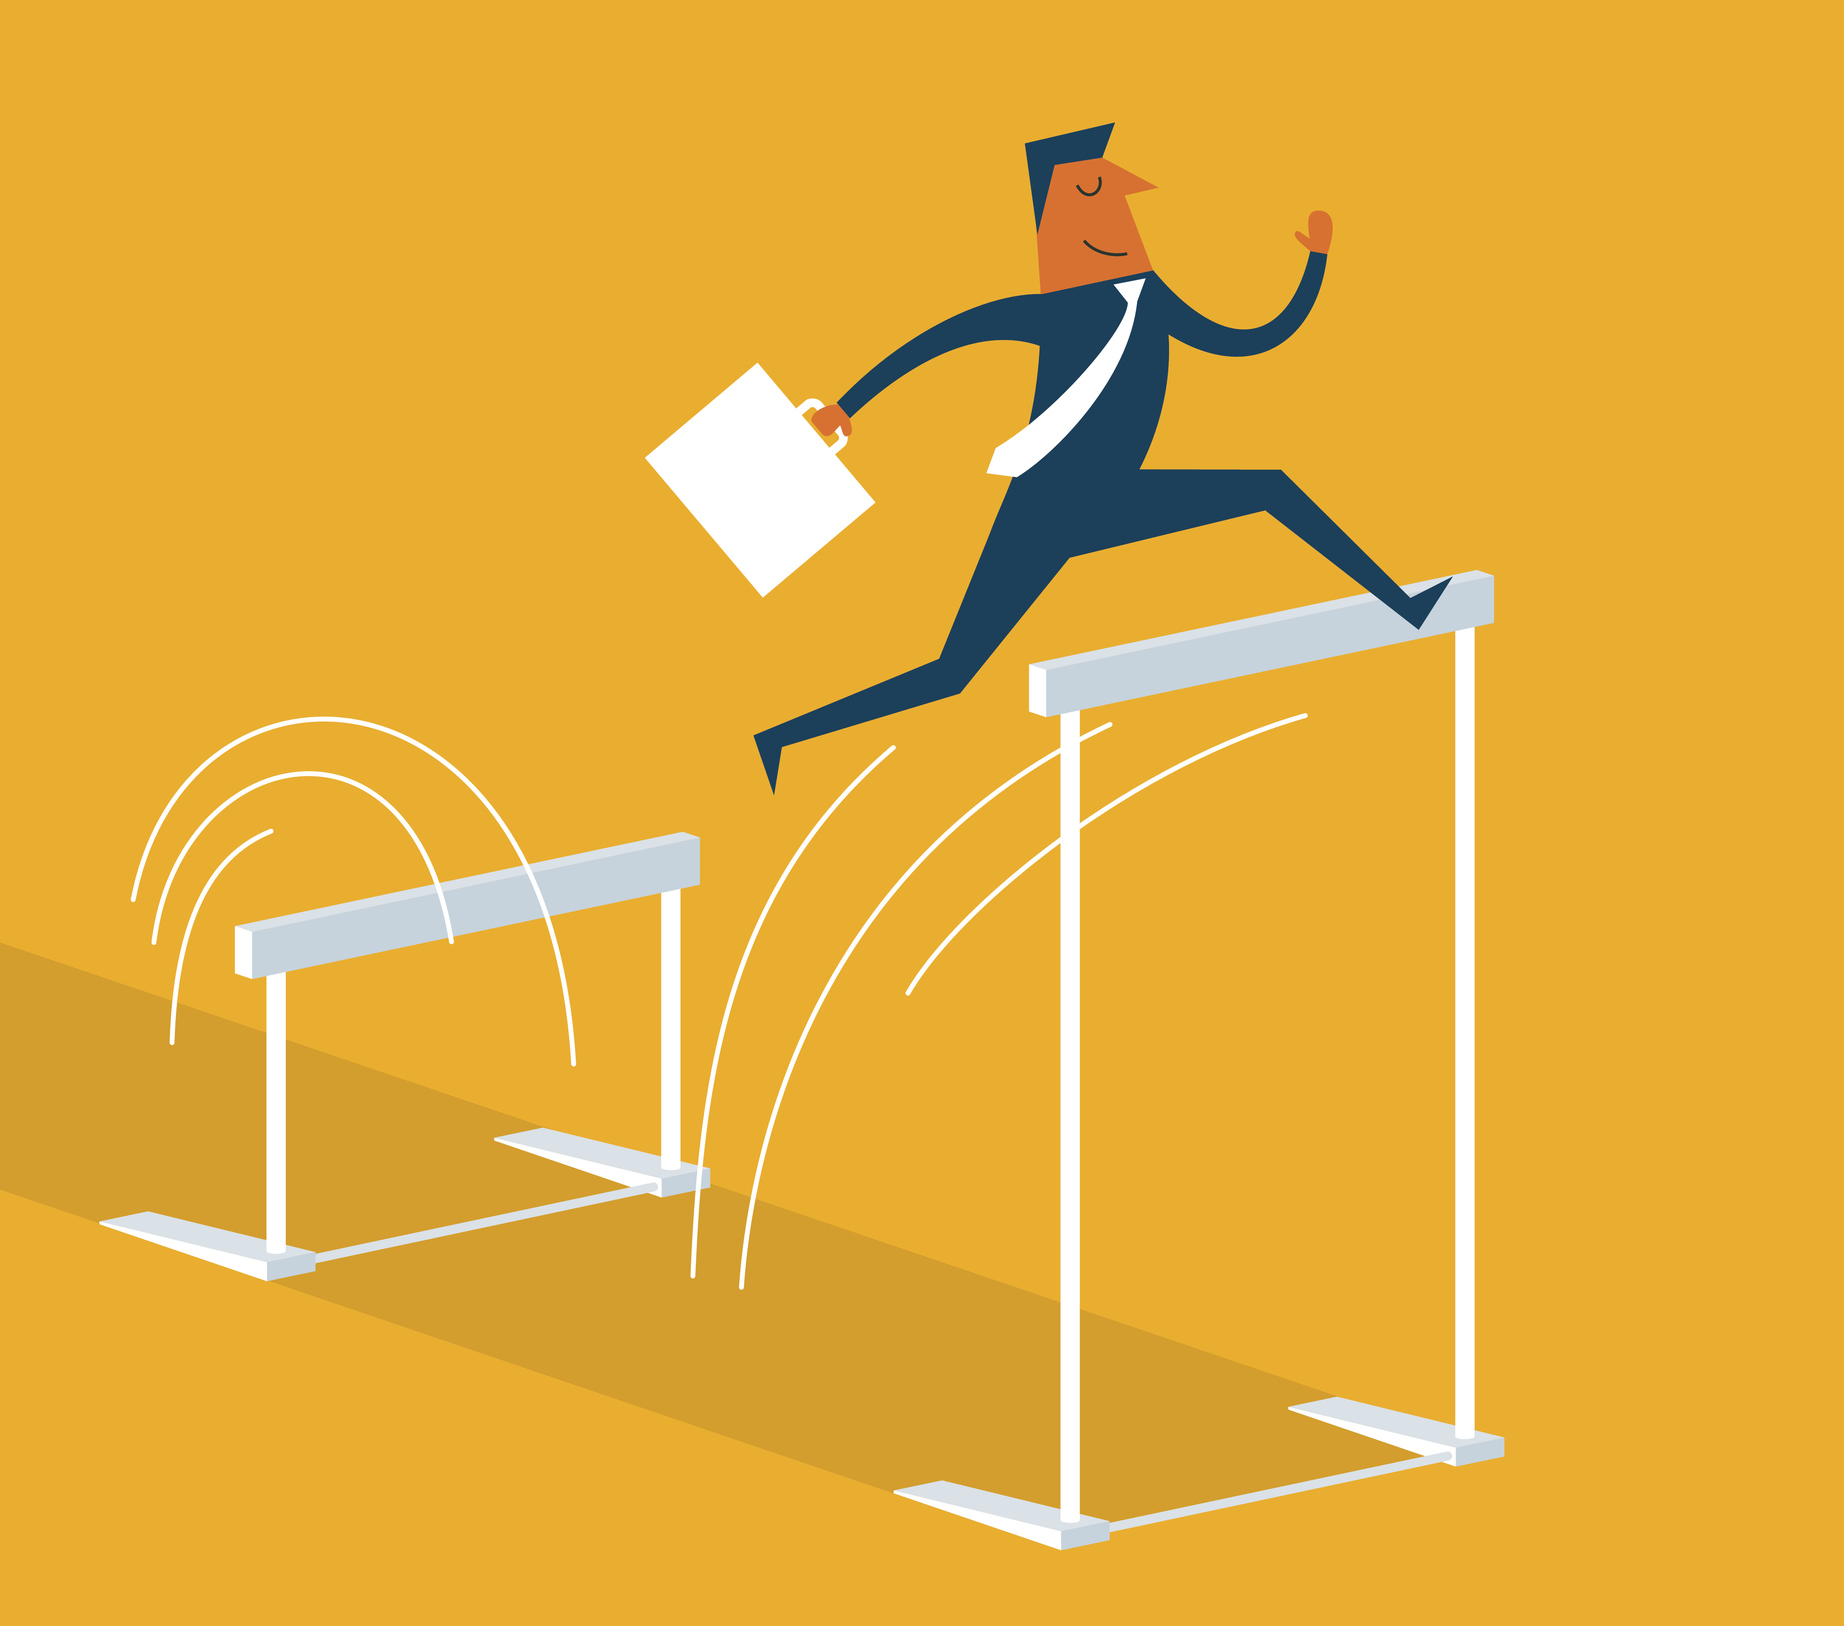 2 Hurdles Your App Idea Must Overcome